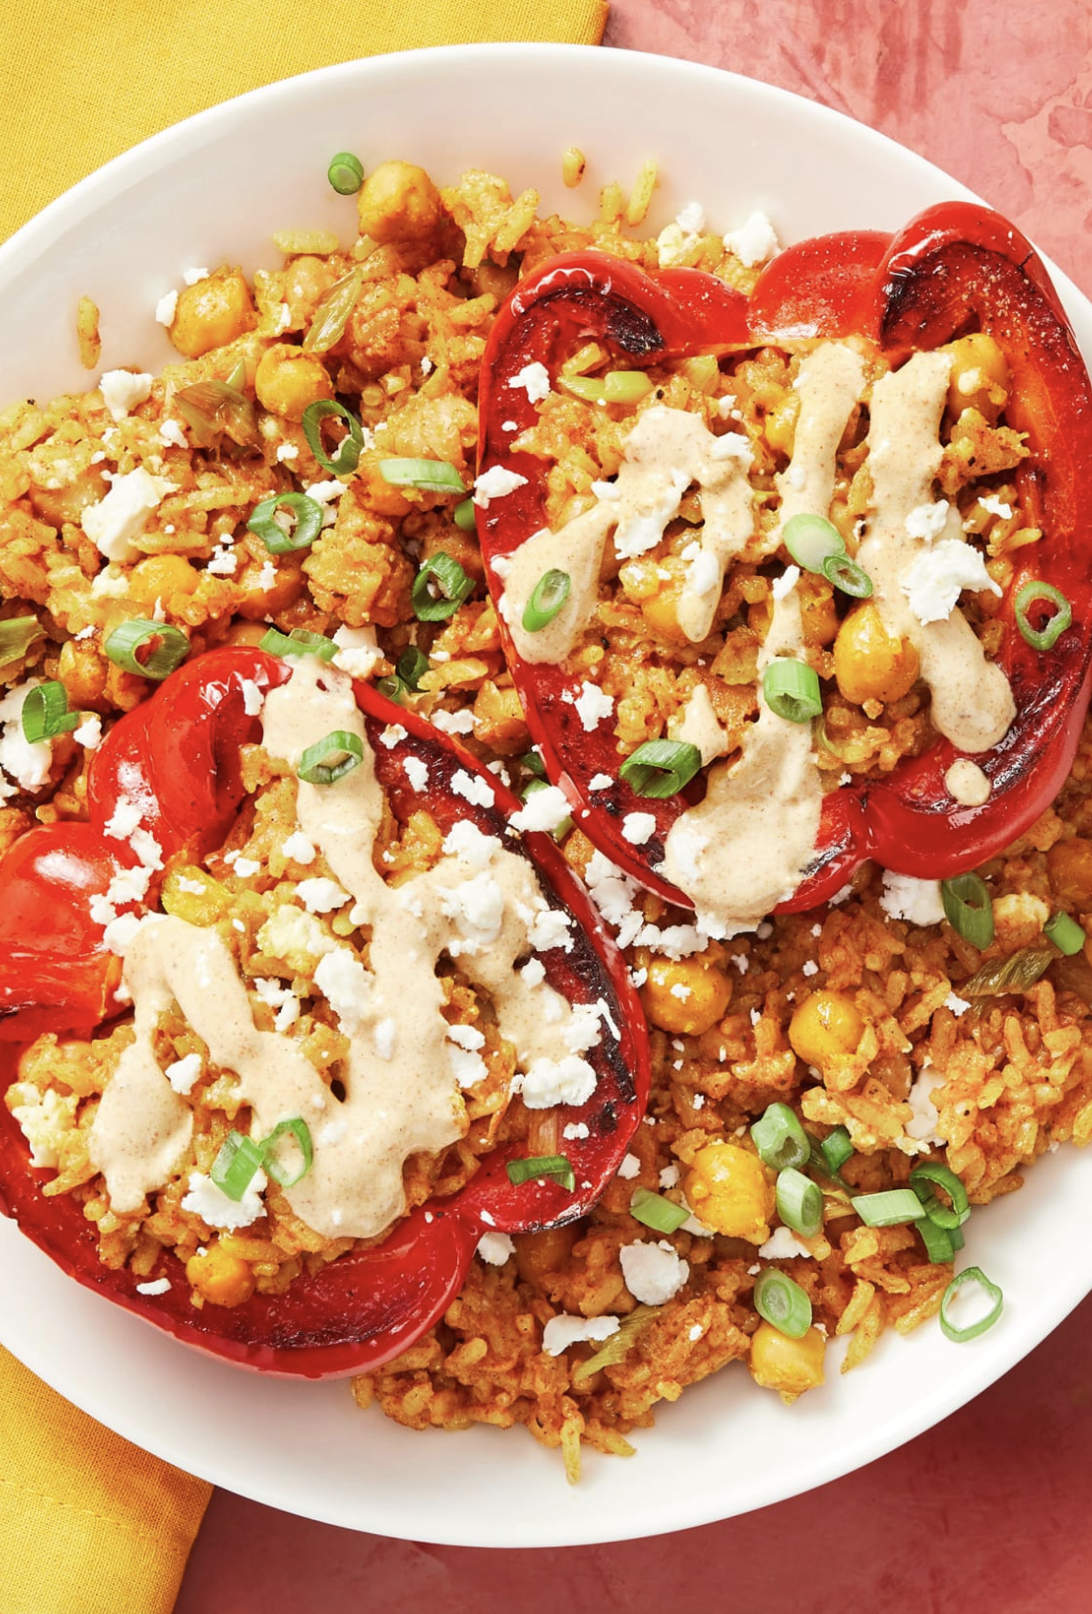 Tunisian Stuffed Peppers with Chickpeas, Apricots, and Feta Cheese